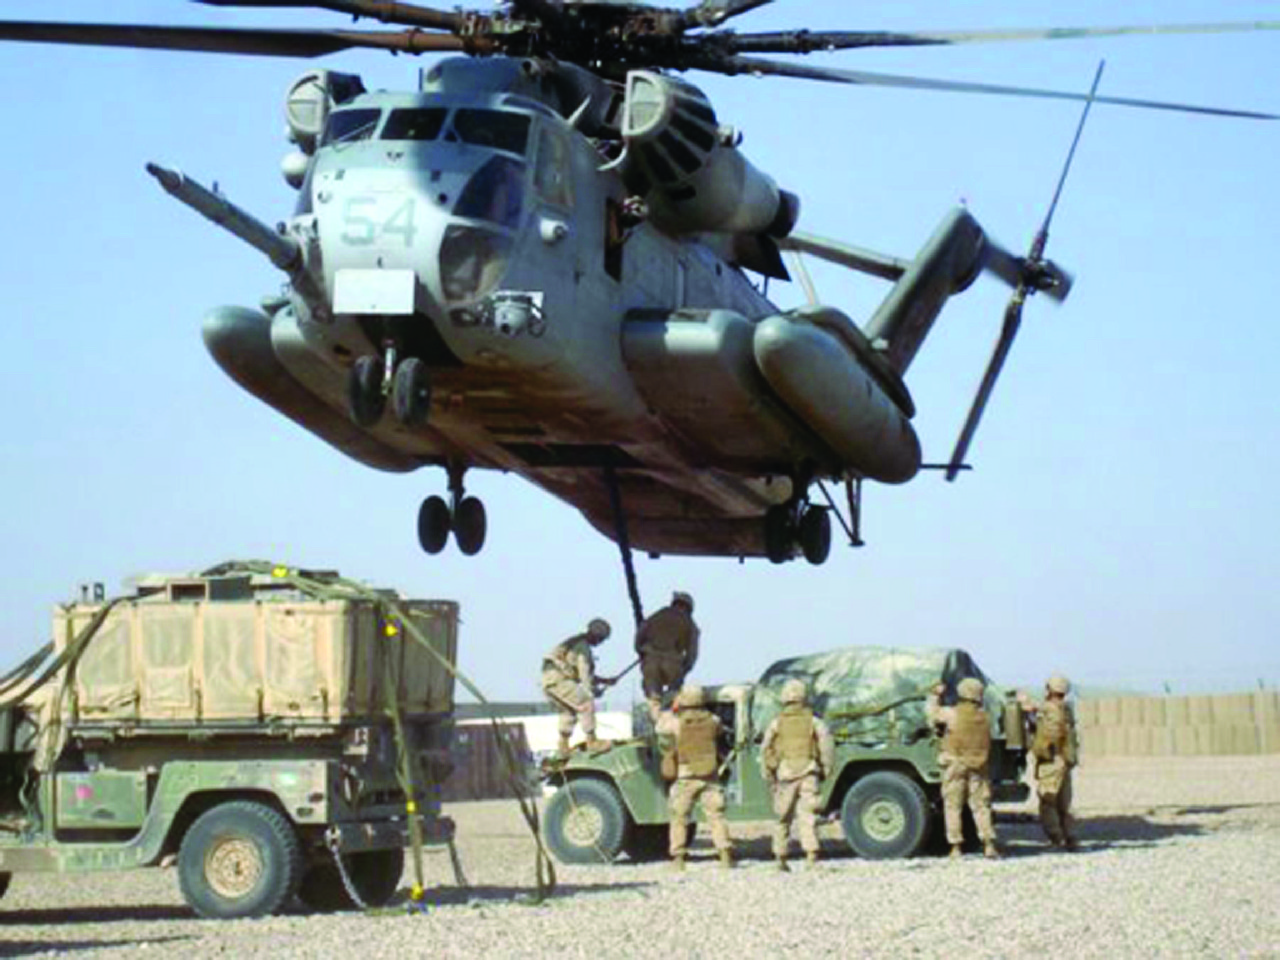 A USMC CH-53E doing sling load operations in Afghanistan in support of Operation Enduring Freedom